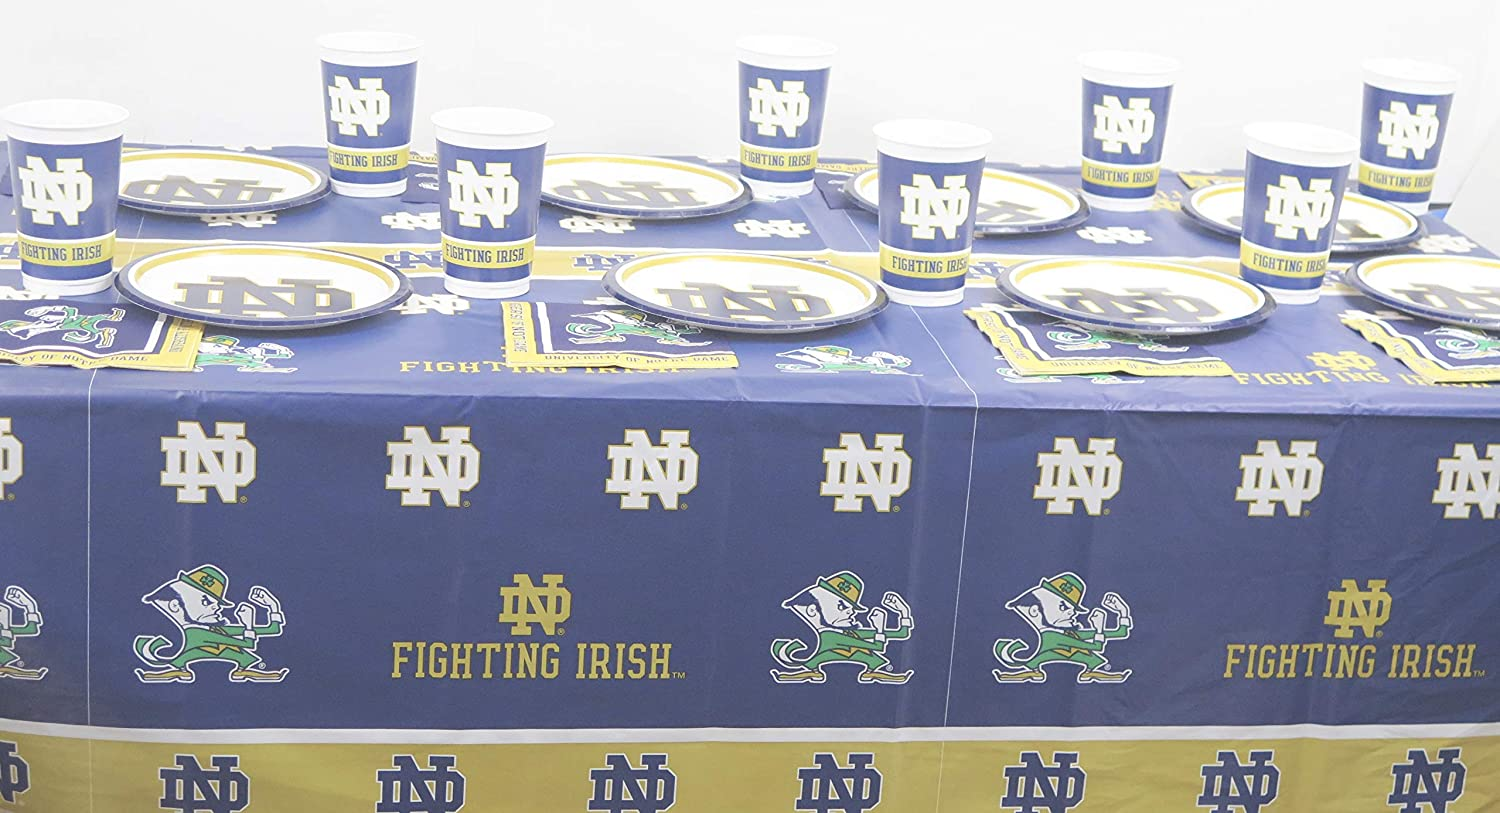 Includes Plates Notre Dame Football Graduation Party Jumbo Plastic Cups and a Tablecloth Creative Concreting Napkins 49 Pieces Set